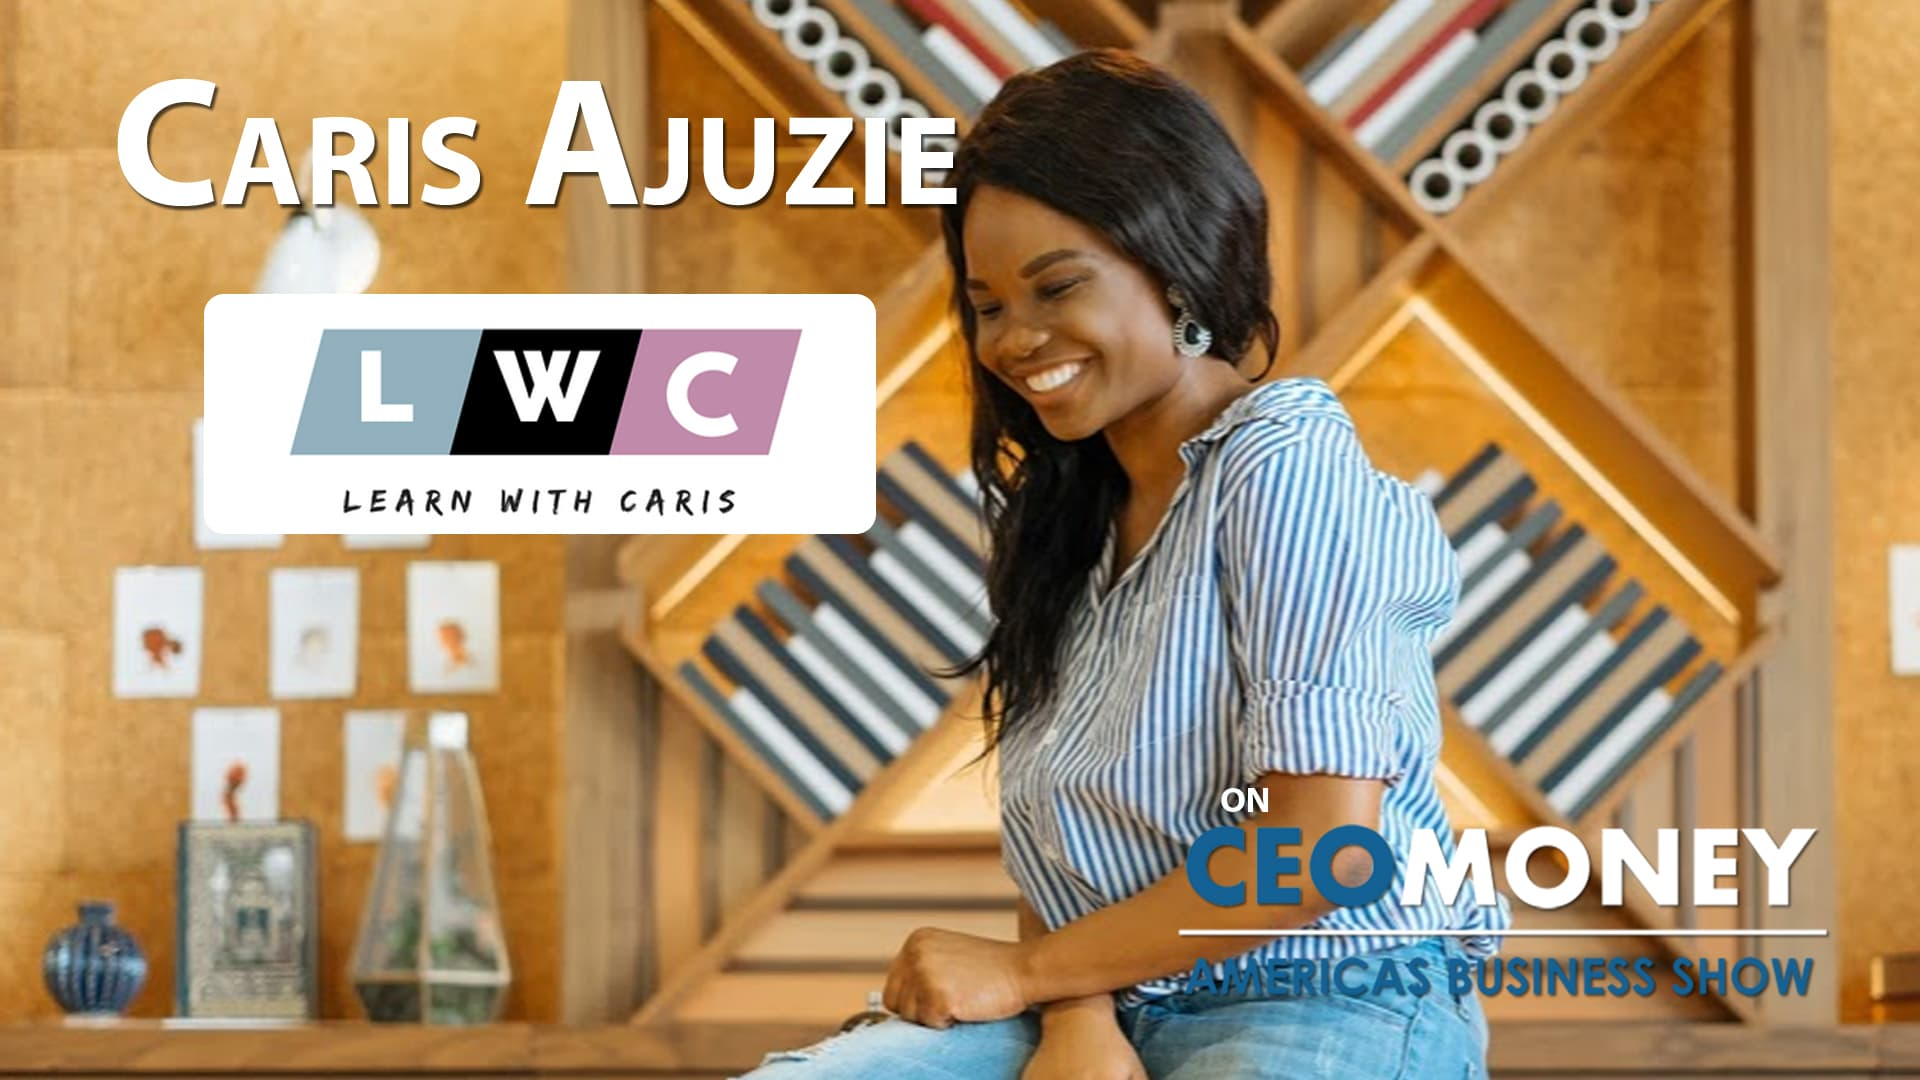 Caris Ajuzie created a 'Fasionpreneur' community to support designers as they build their brands